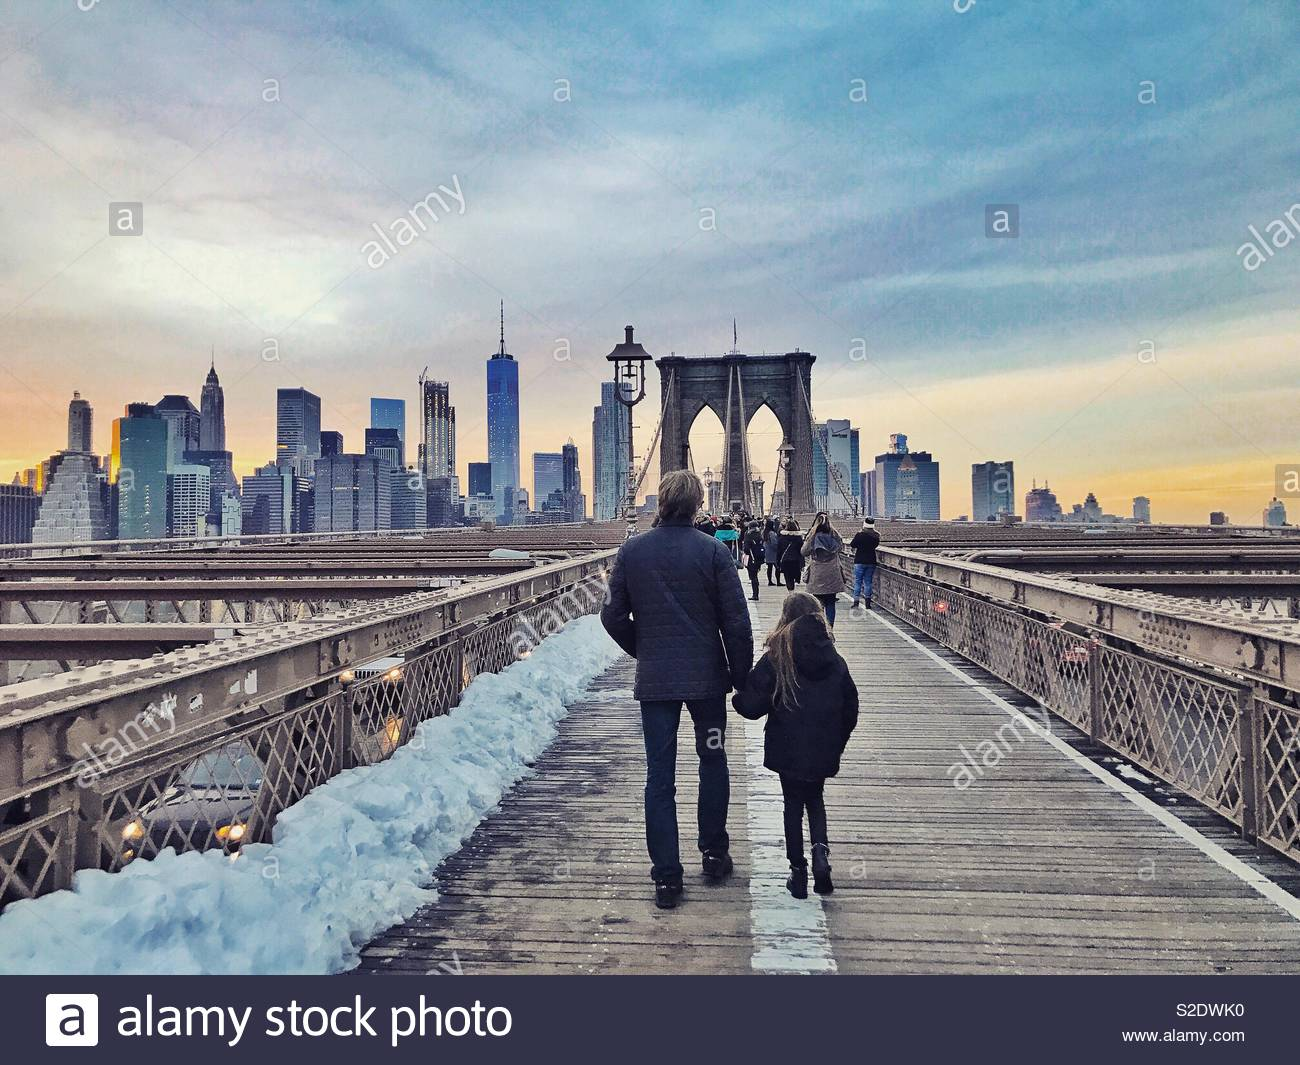 Father and daughter walking across the Brooklyn bridge toward the horizon of the Manhattan skyline in the setting sun during winter - Stock Image